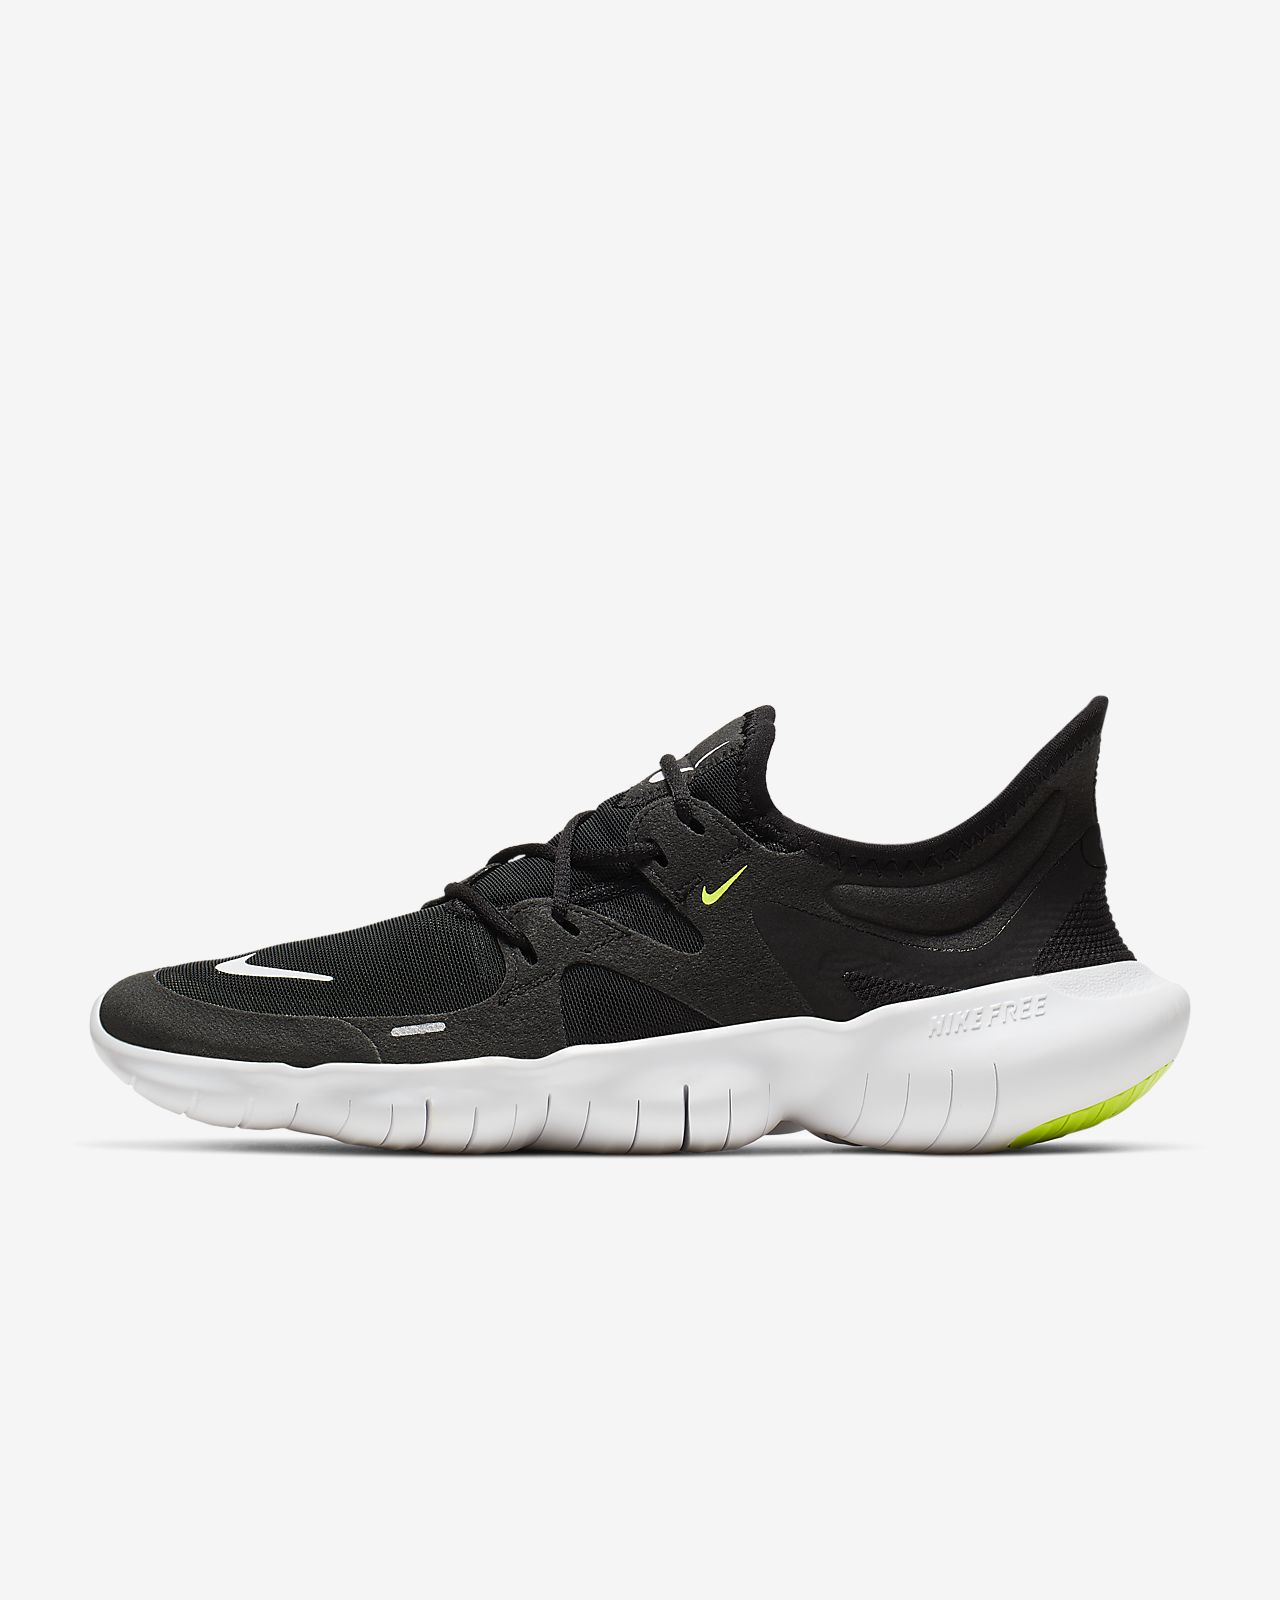 Nike Free Run 3 Damen Schwarz Lila | Black shoes women, Nike